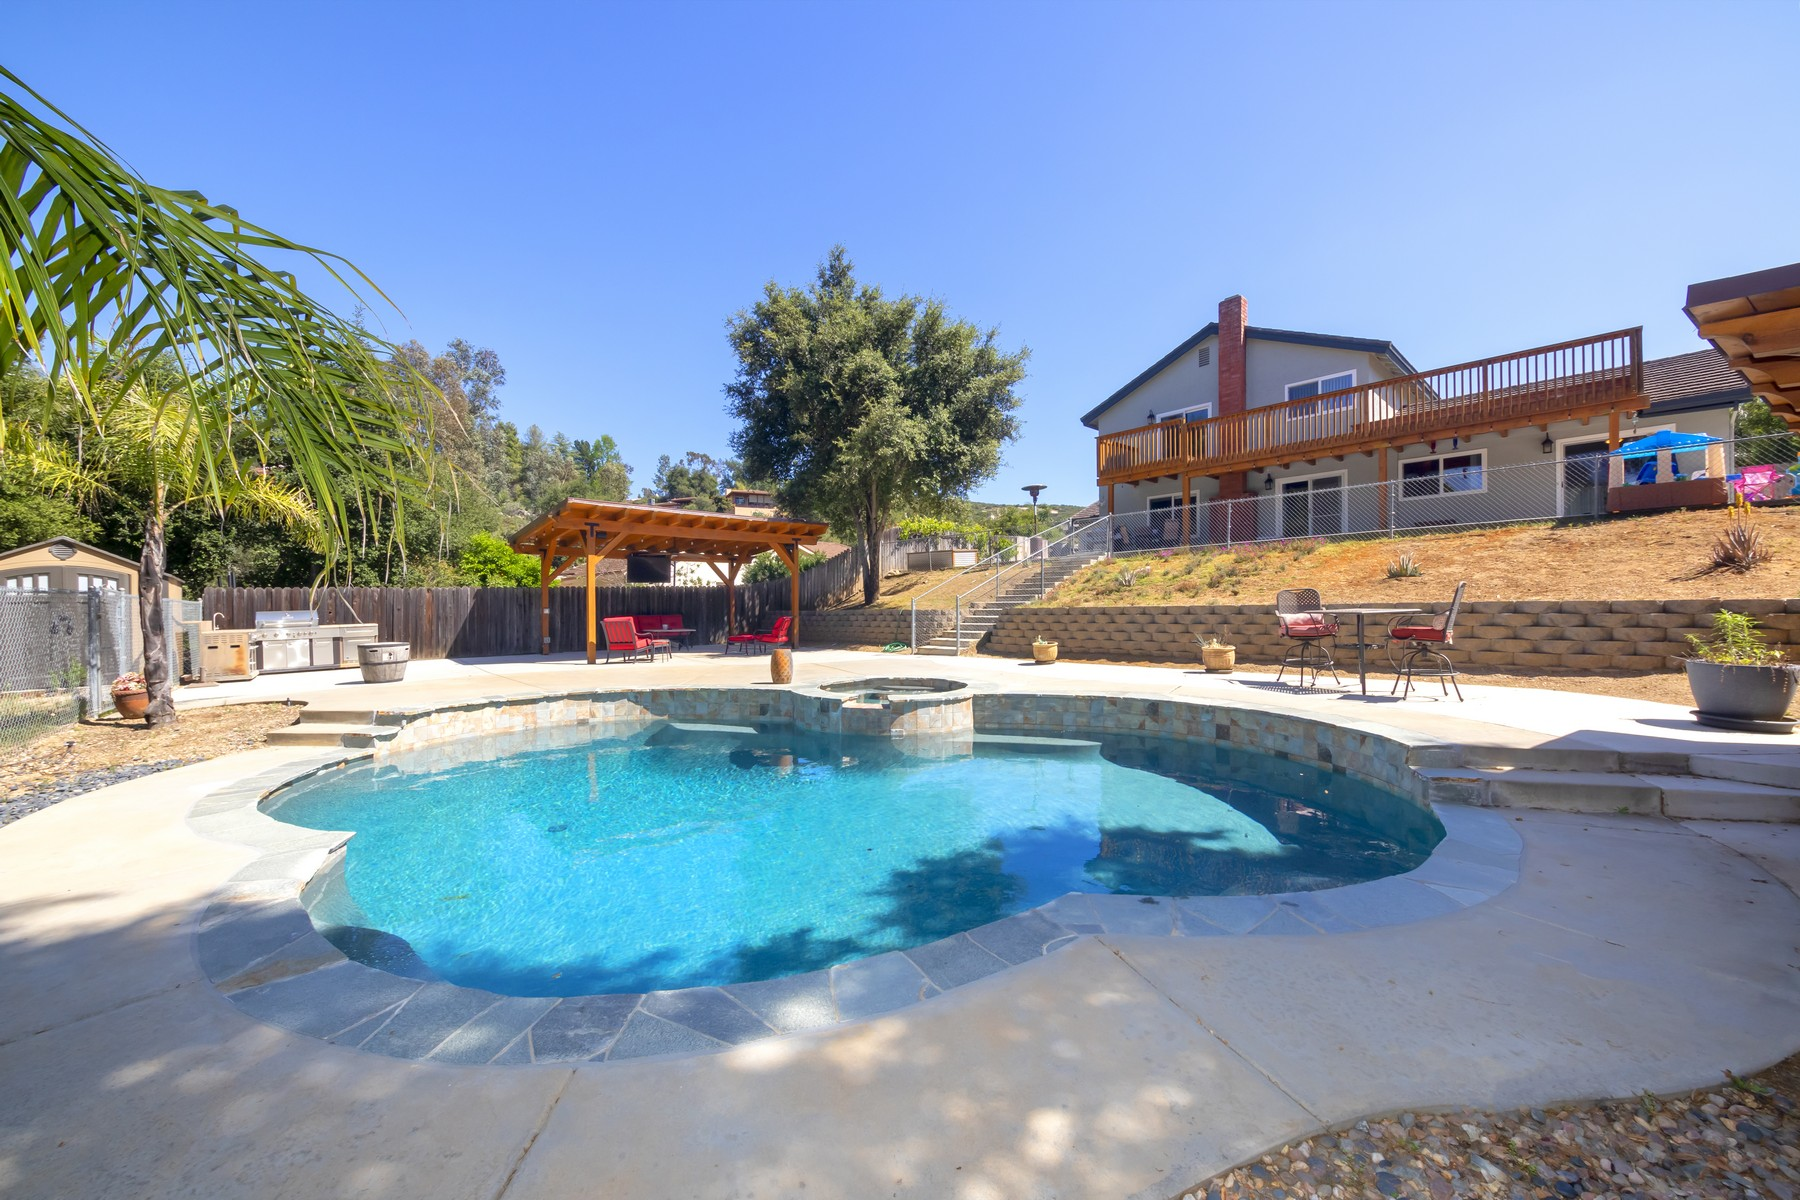 Single Family Homes for Active at Beautiful San Diego Country Estates Pool Home w/Paid Solar 24064 Nectar Way Ramona, California 92065 United States